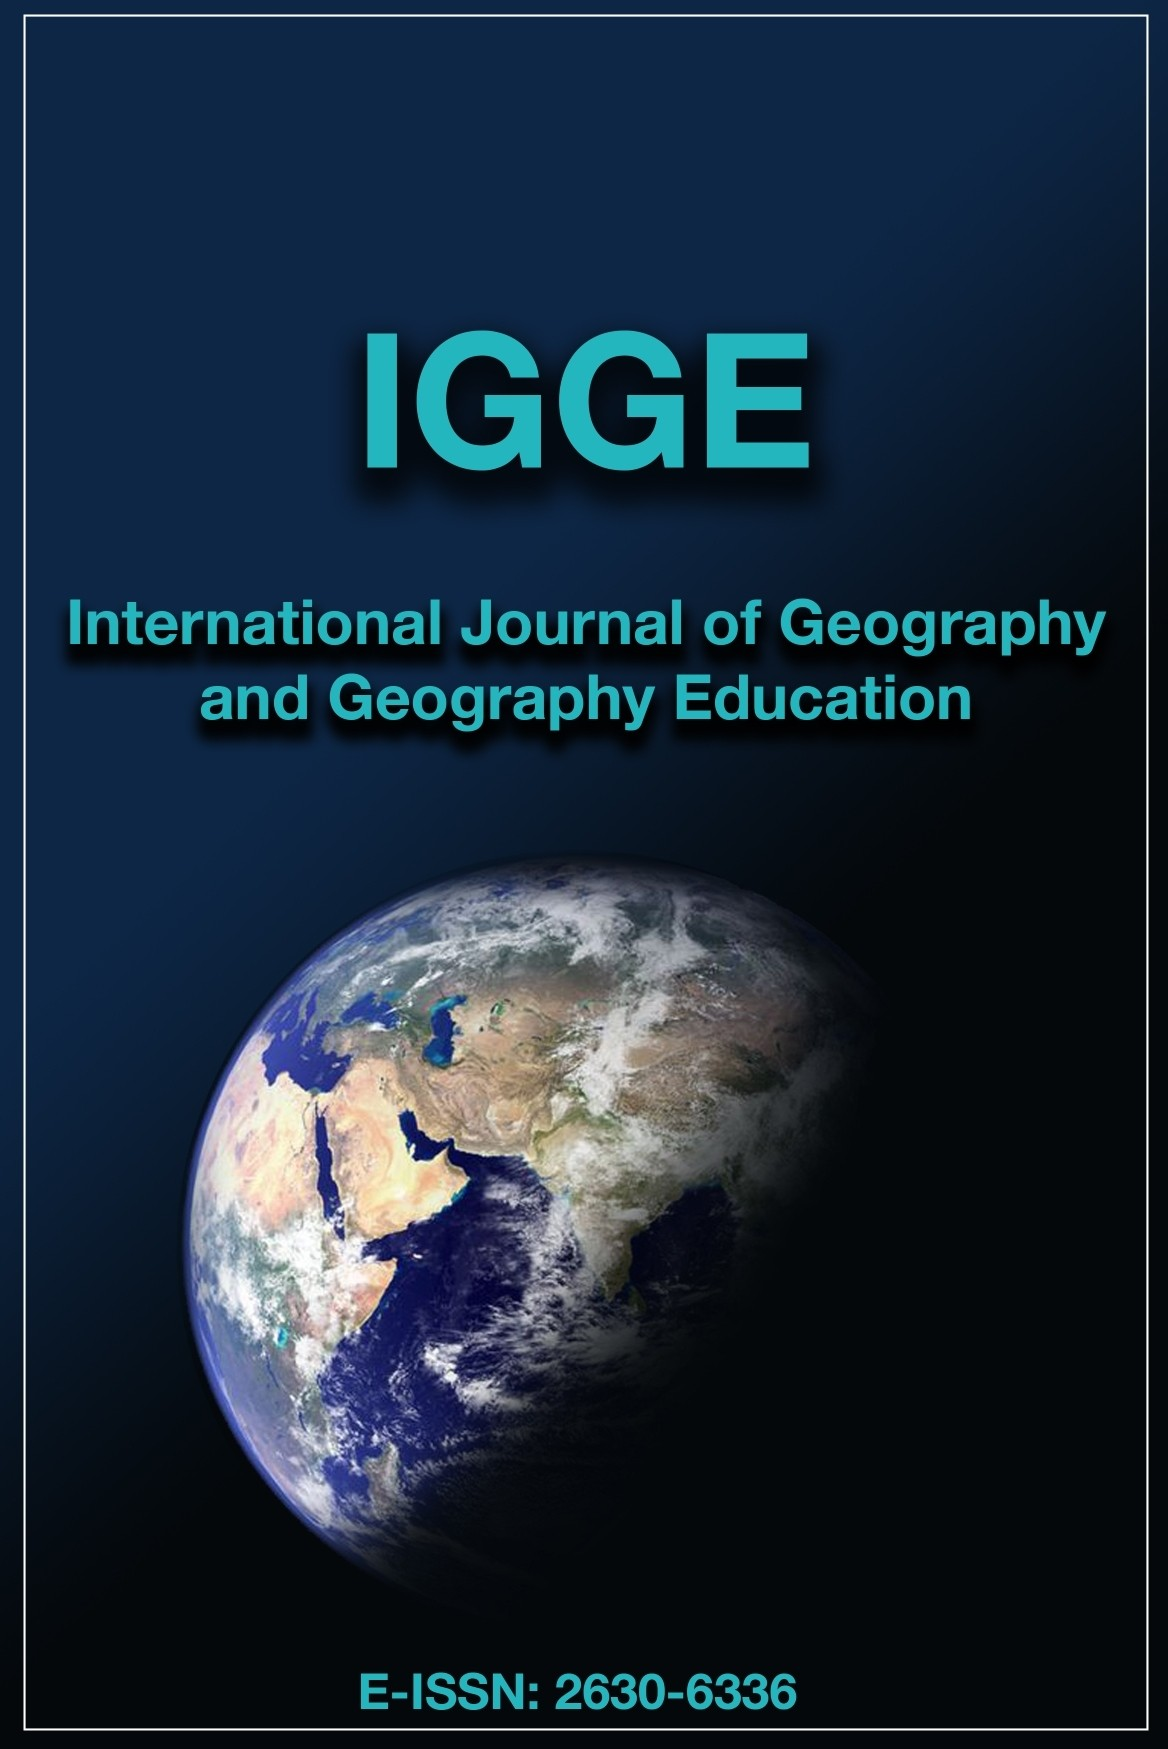 International Journal of Geography and Geography Education (IGGE)